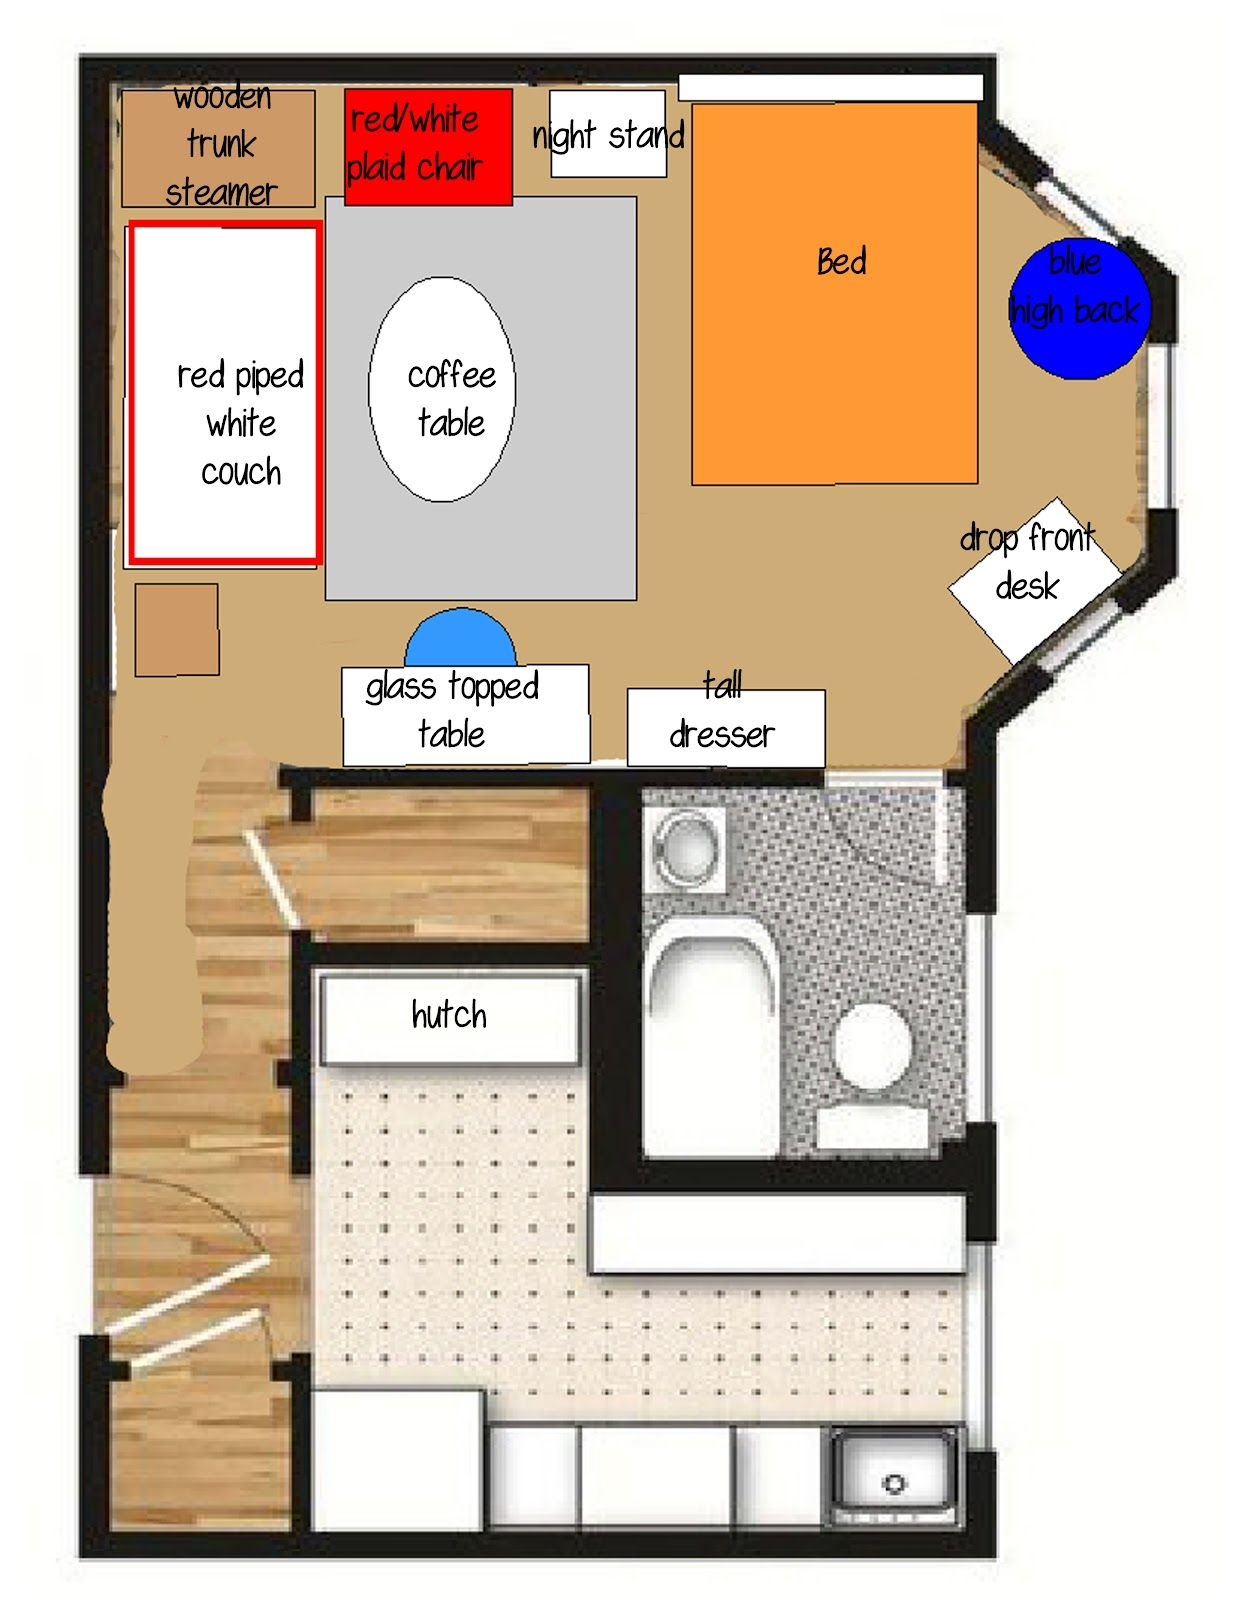 Studio Apartment Furniture Layout How I Helped Layout A Tiny Tiny Apartment With Shabby Chic